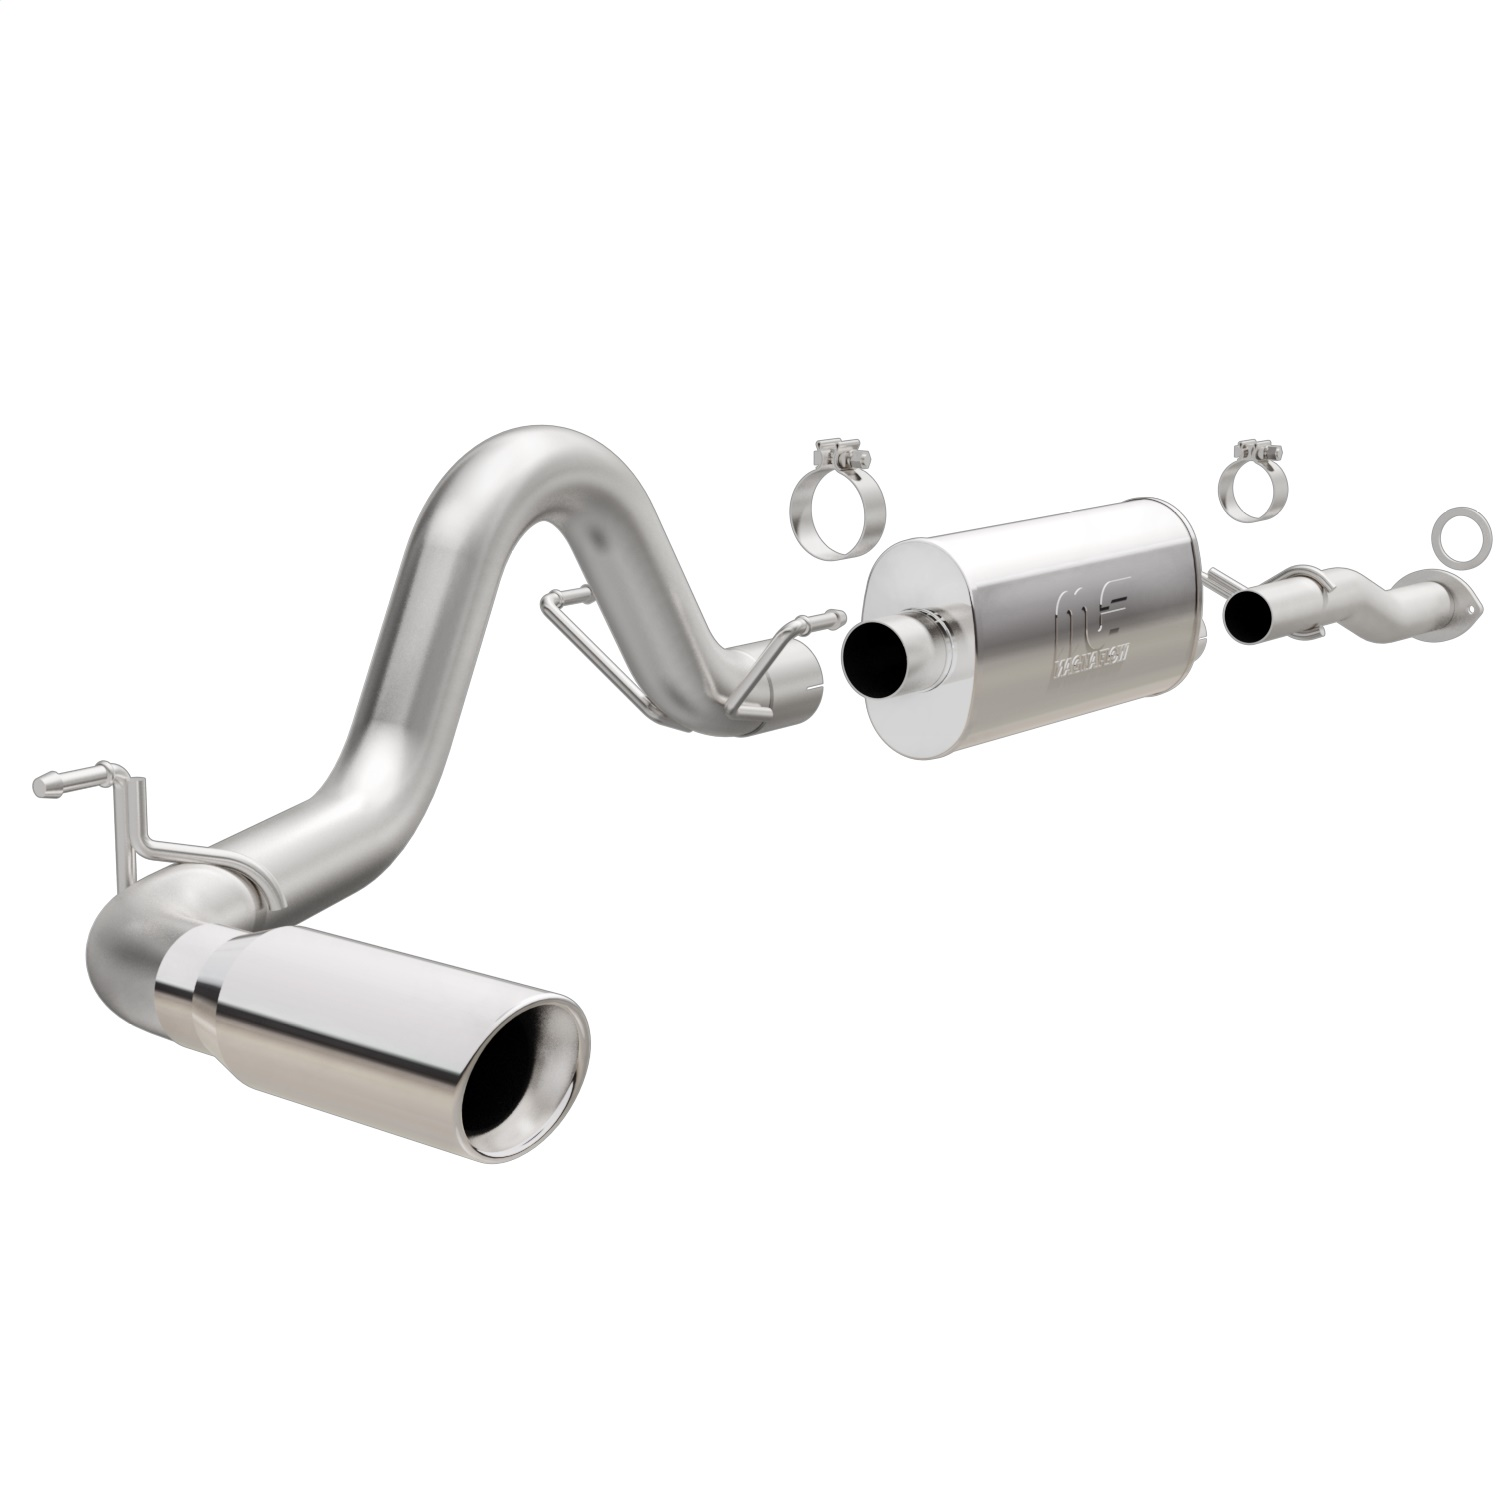 Magnaflow Performance Exhaust 19291 MF Series Performance Cat-Back Exhaust System